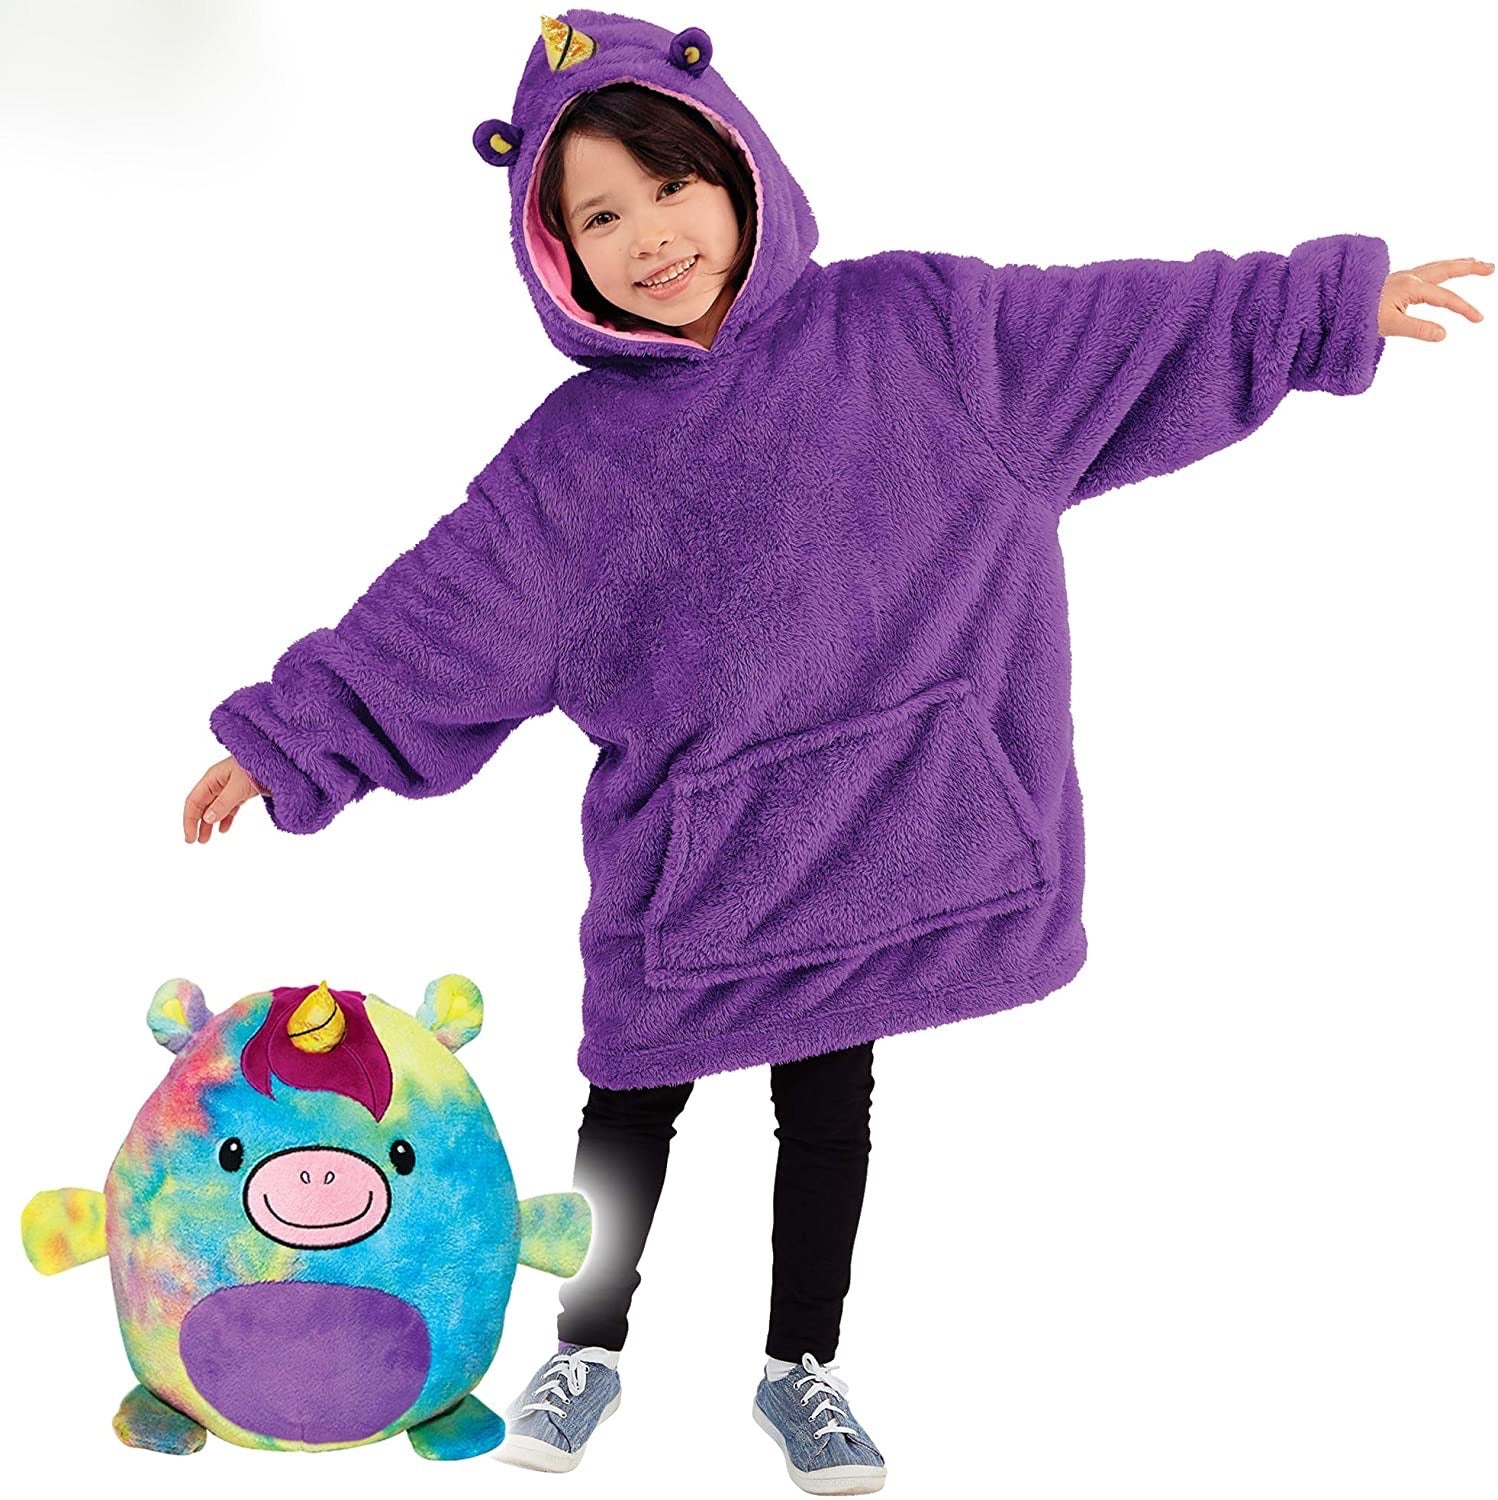 Soo Fluffy Blanket - Teddy Hoodie For Kids Soo Fluffy Blanket - Teddy Hoodie For Kids - Soo FluffyCLOTHING & ACCESSORIES Soo Fluffy